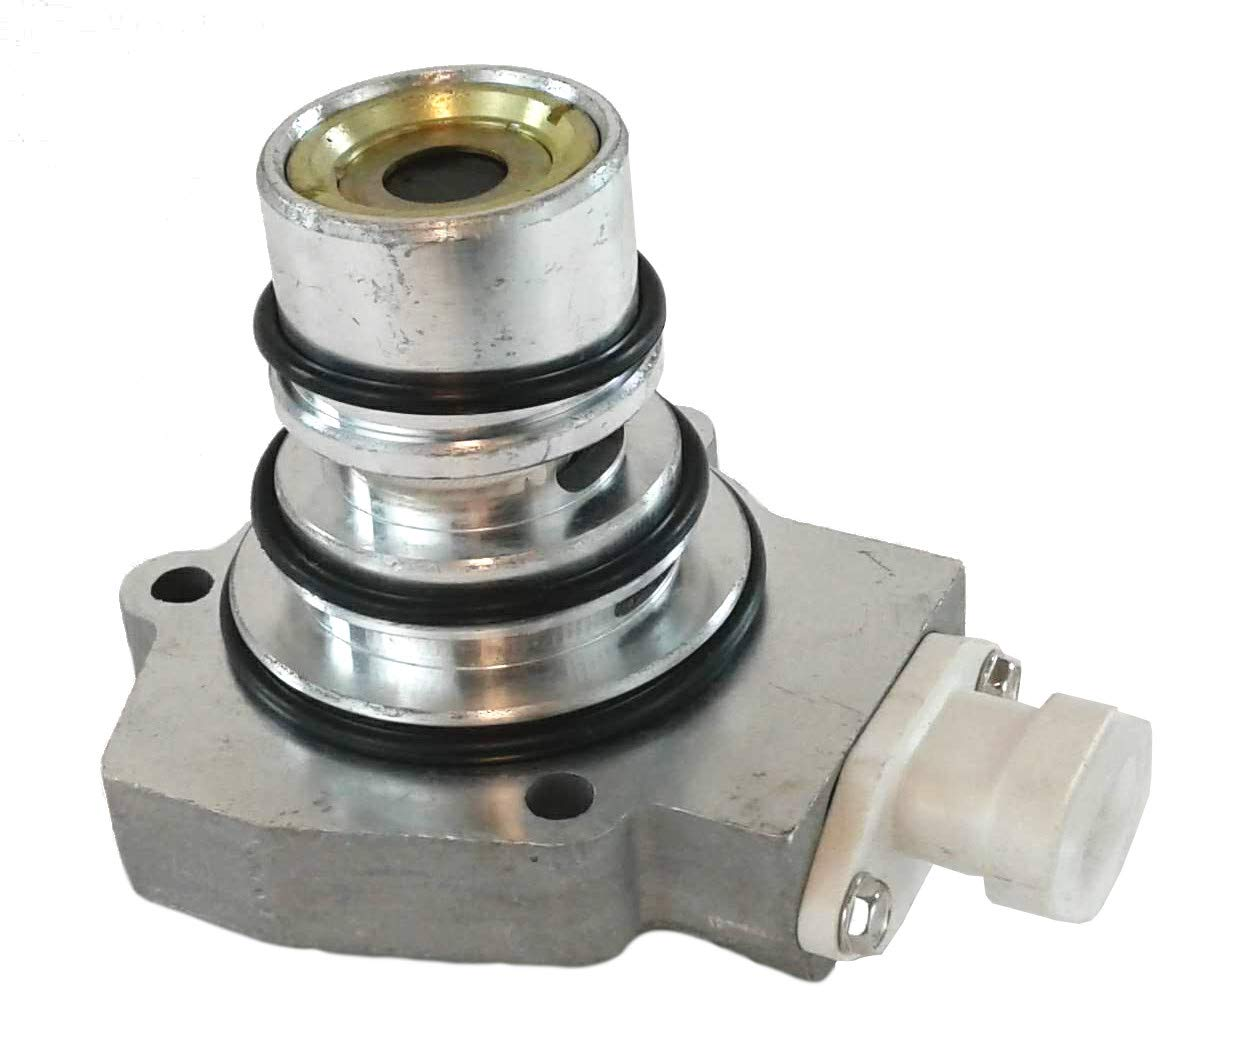 Purge Valve and Heater/Thermostat Repair Assembly for 12-Volt AD-9 Air Dryers for Heavy Duty Big Rigs